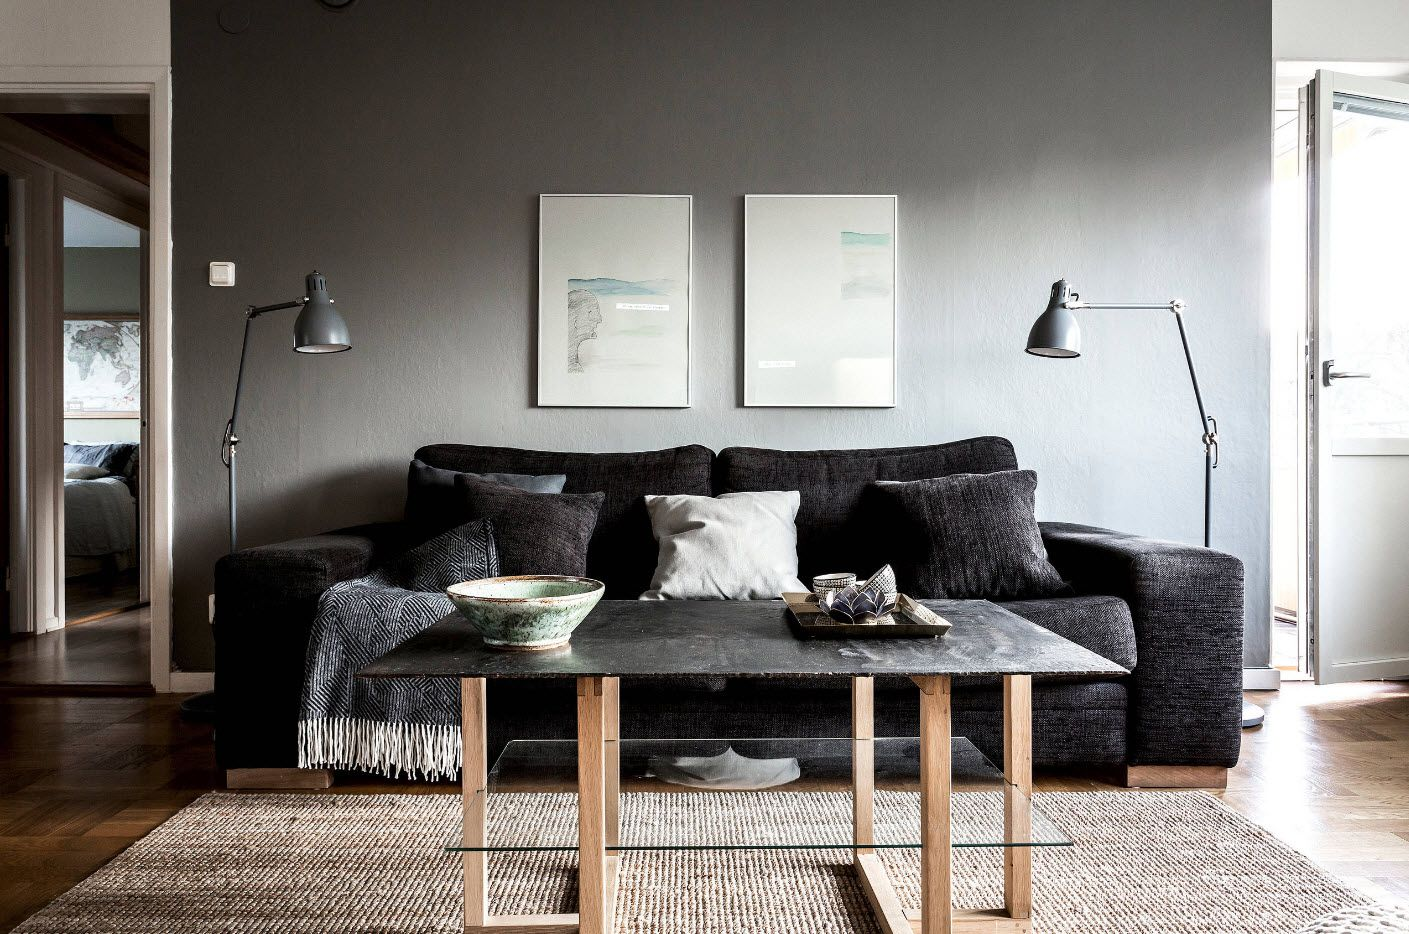 Dark gray wall with pictures and black sofa with lamps and glass coffee table at the front